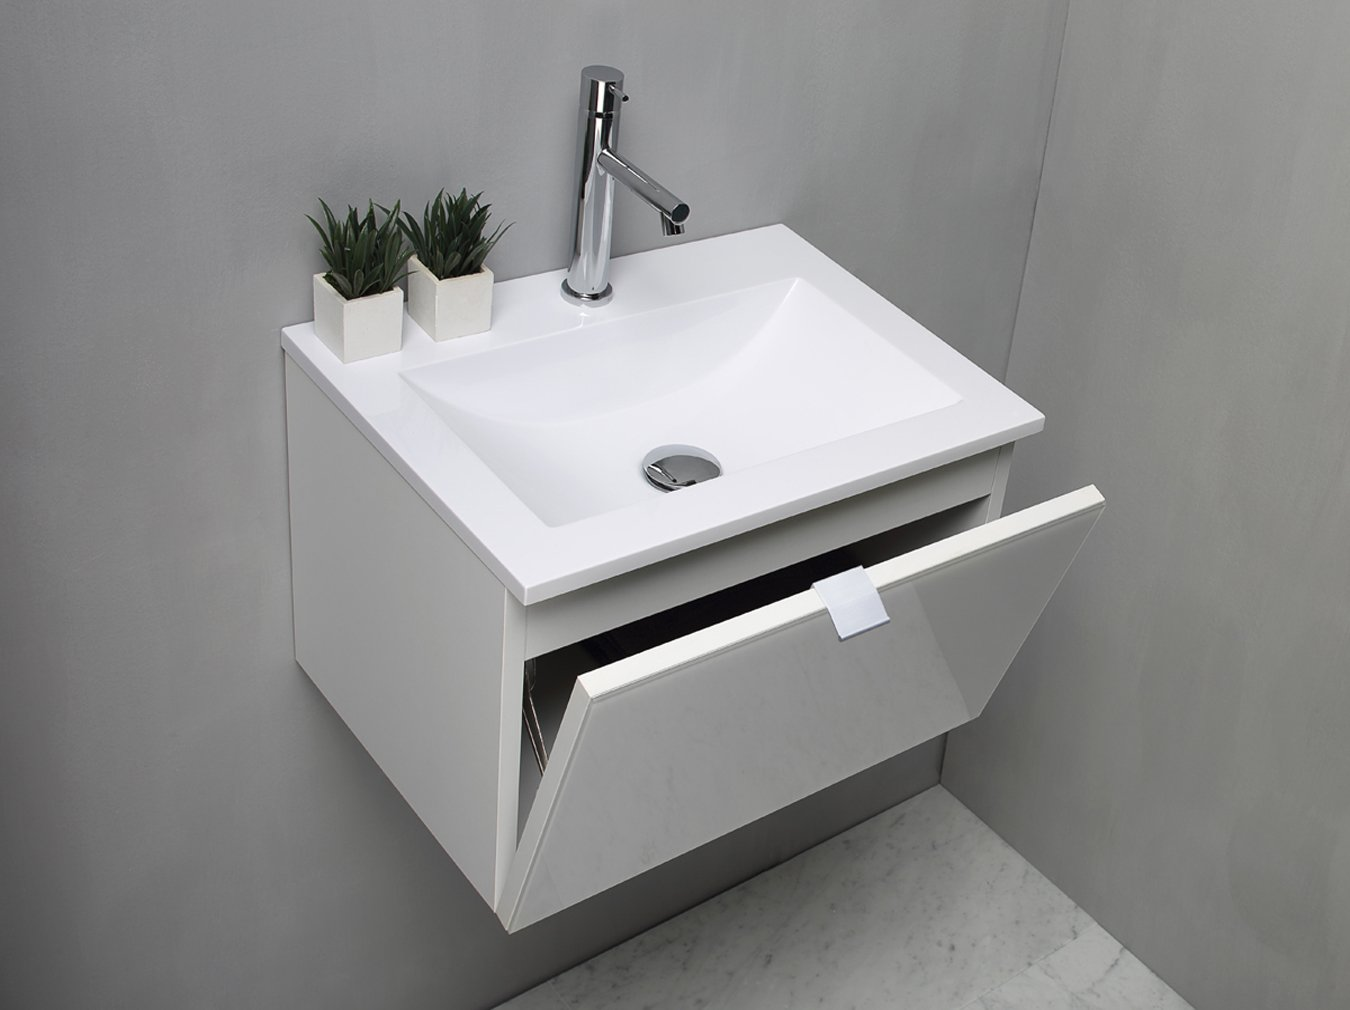 Awesome lavandino bagno sospeso ideas for Amazon lavabos